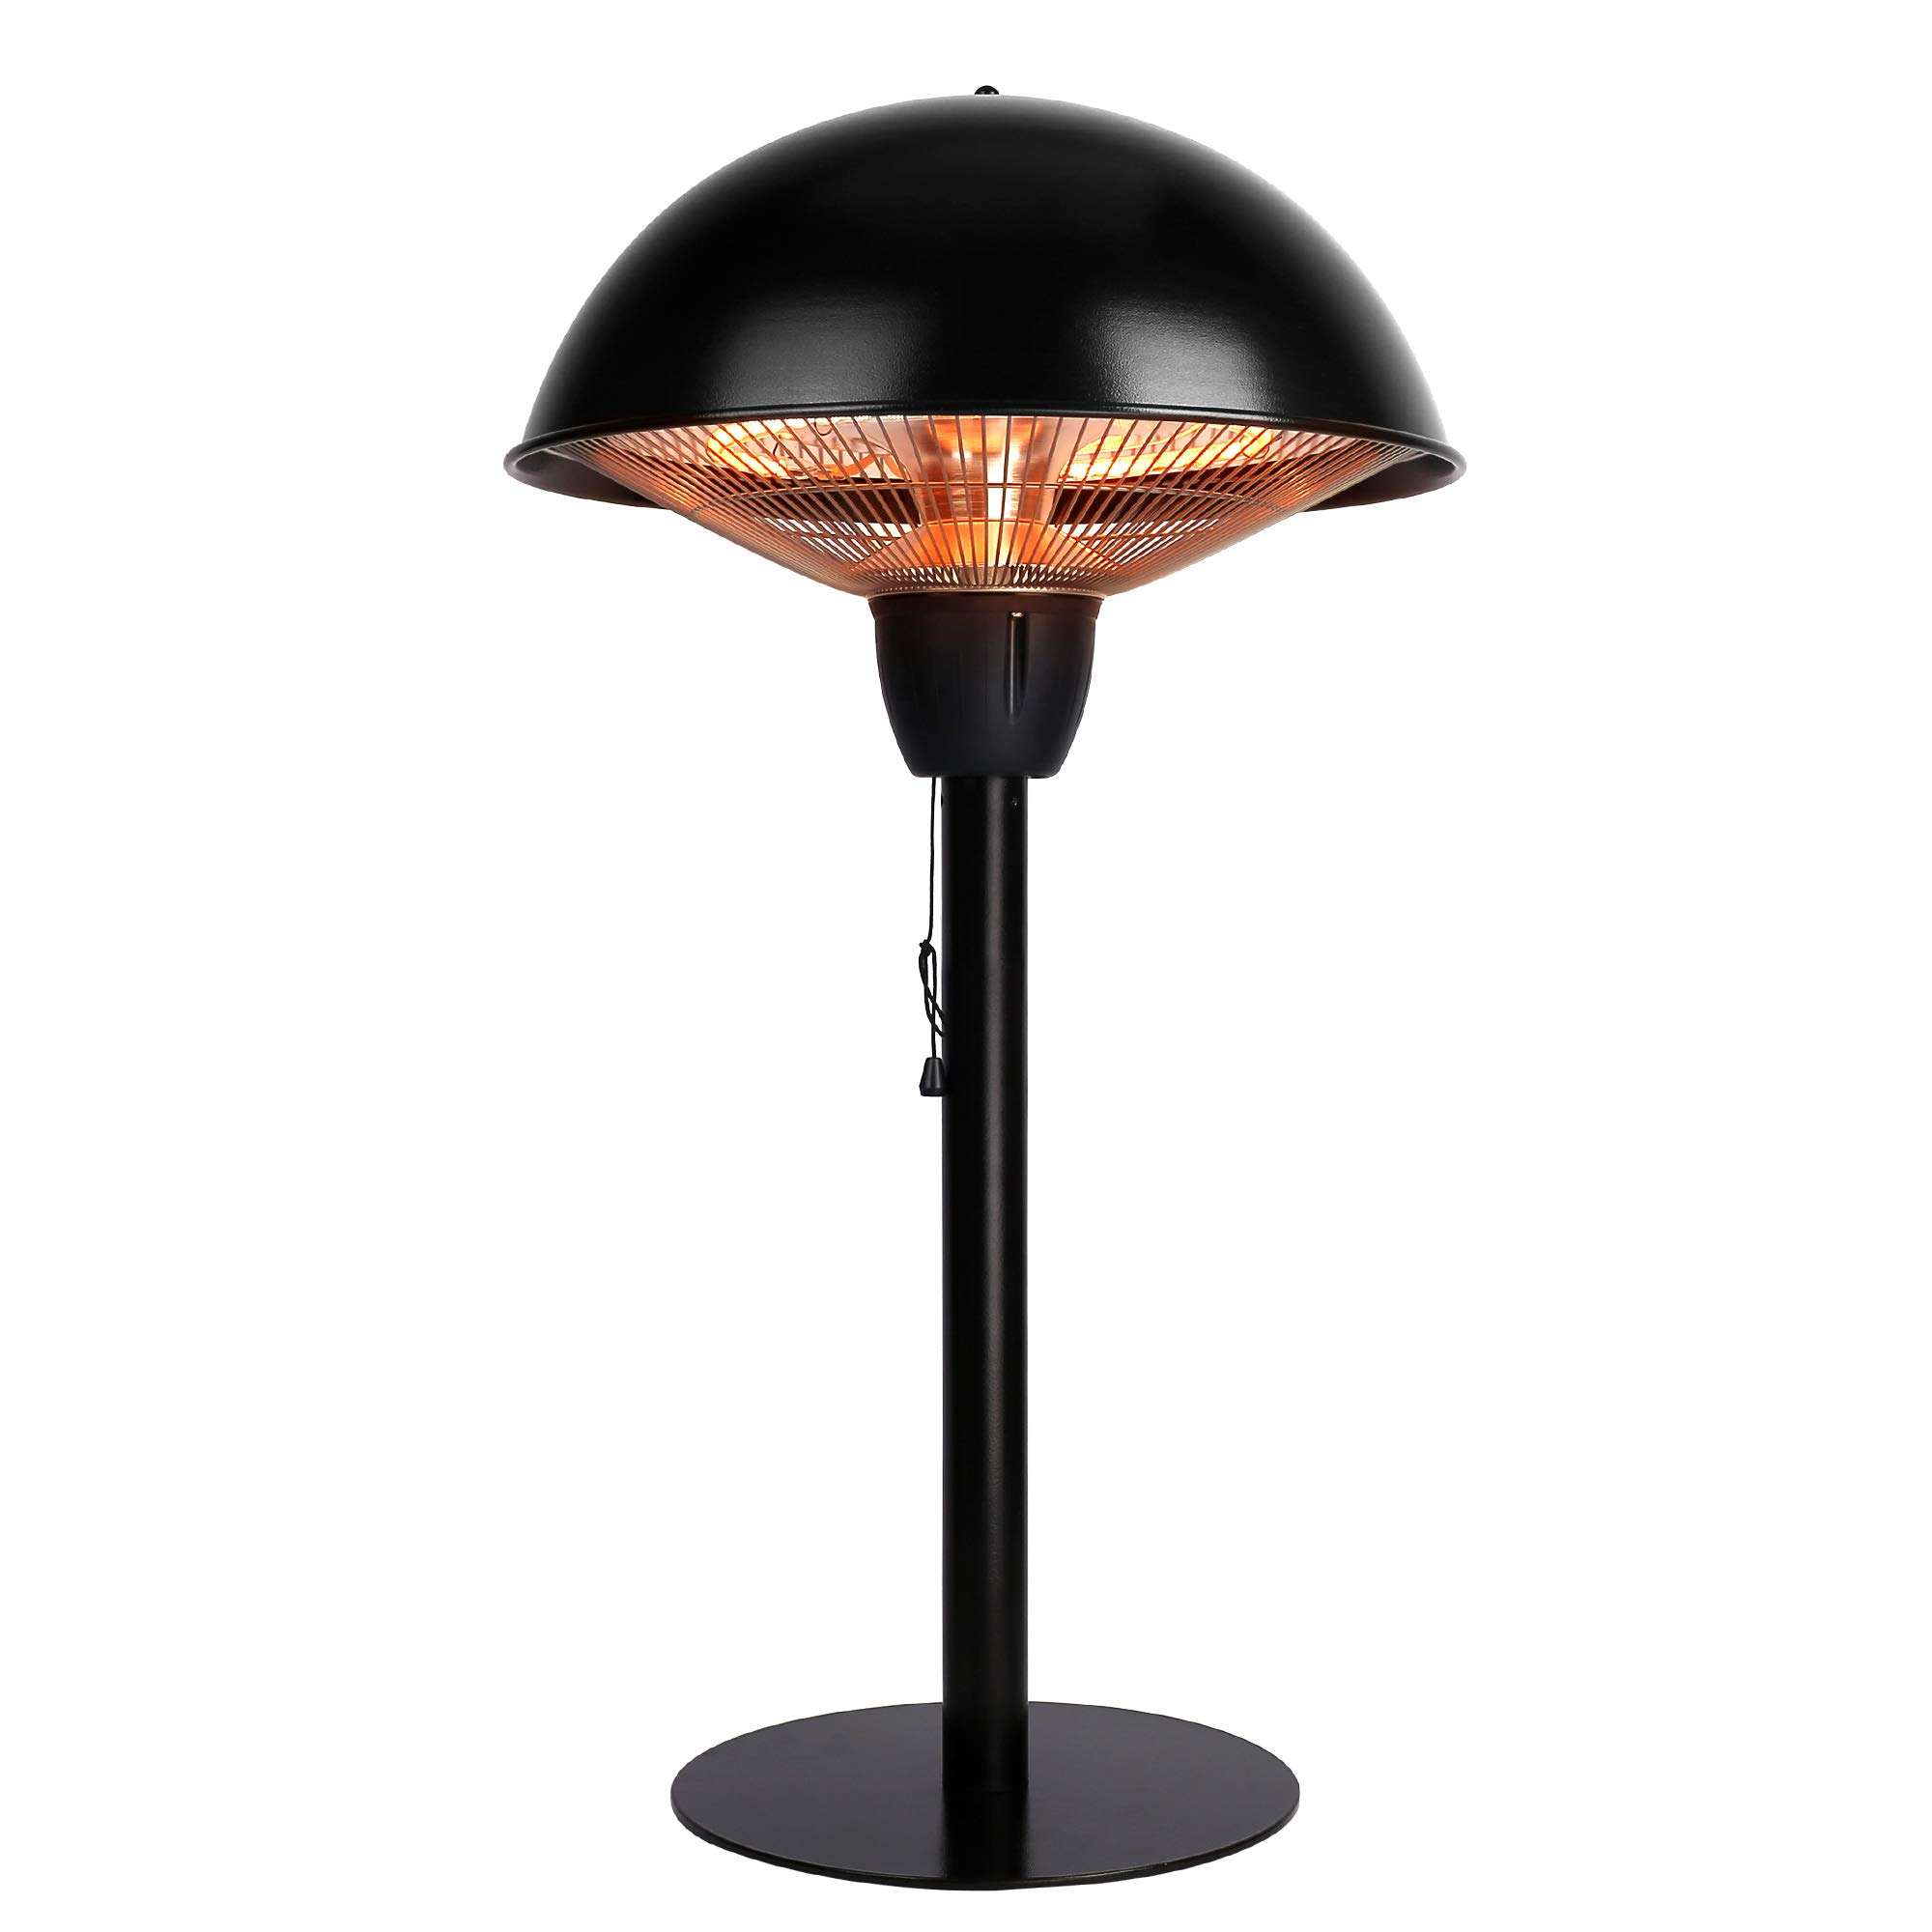 Star Patio Electric Patio Heater, Tabletop Heater, Infrared Heaters, Electric Outdoor Heater, Outdoor Space Heater, Portable Heater with Hammered Bronze Finished, 1500W, STP1566-BT by Star Patio